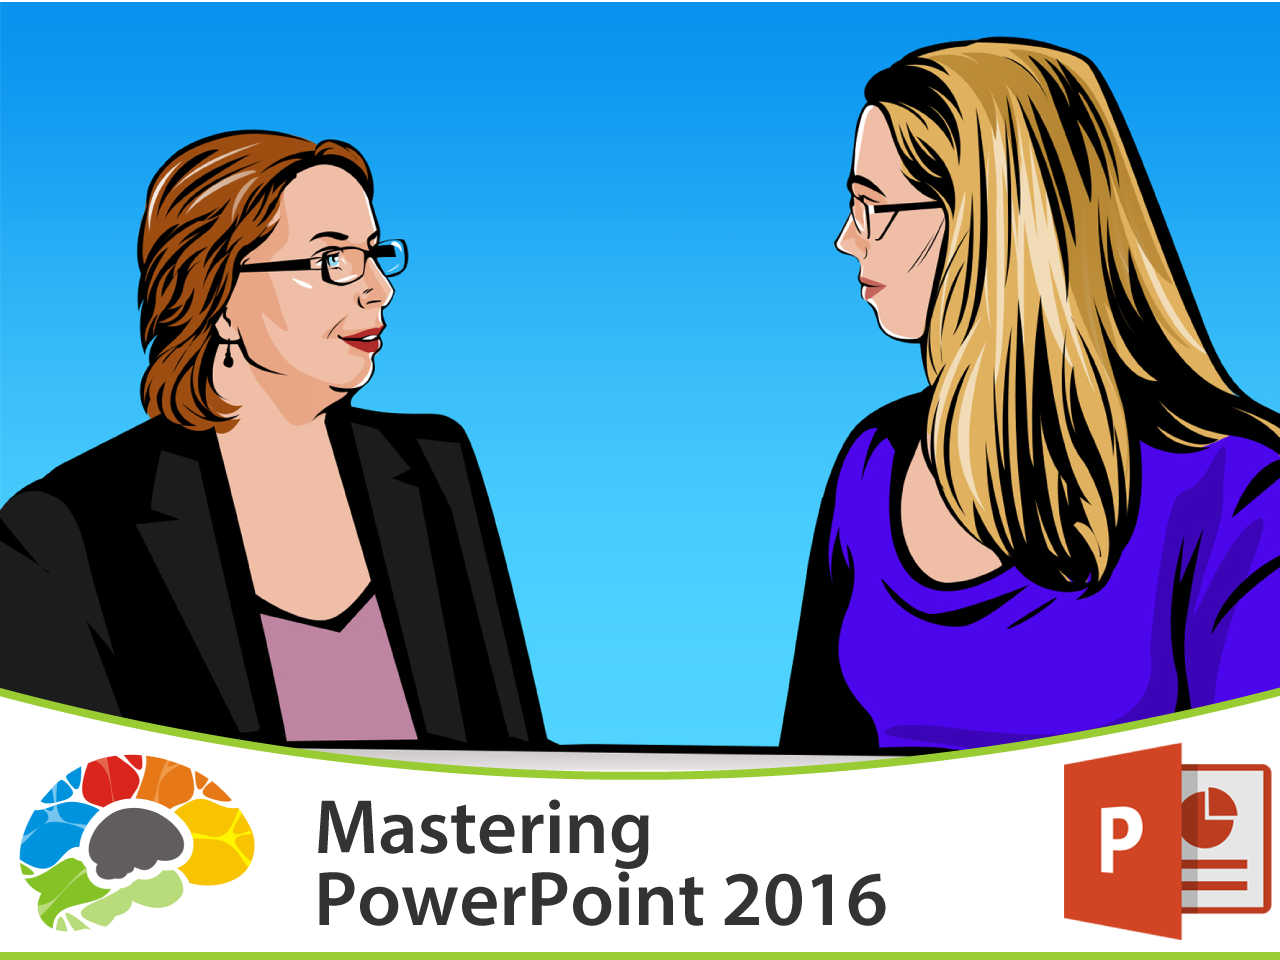 Mastering PowerPoint 2016 (full course)